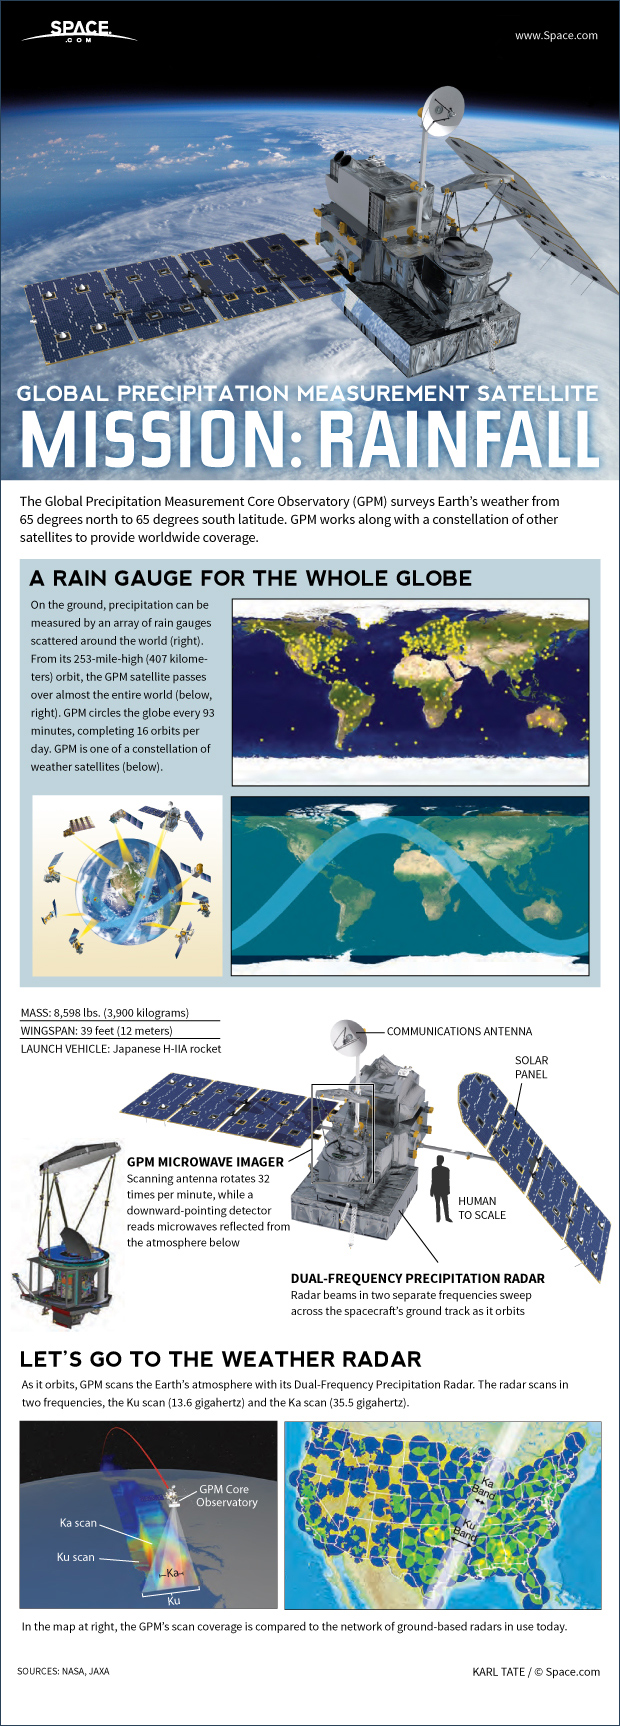 Mapping Rain & Snow: How the Global Precipitation Measurement Satellite Works (Infographic)